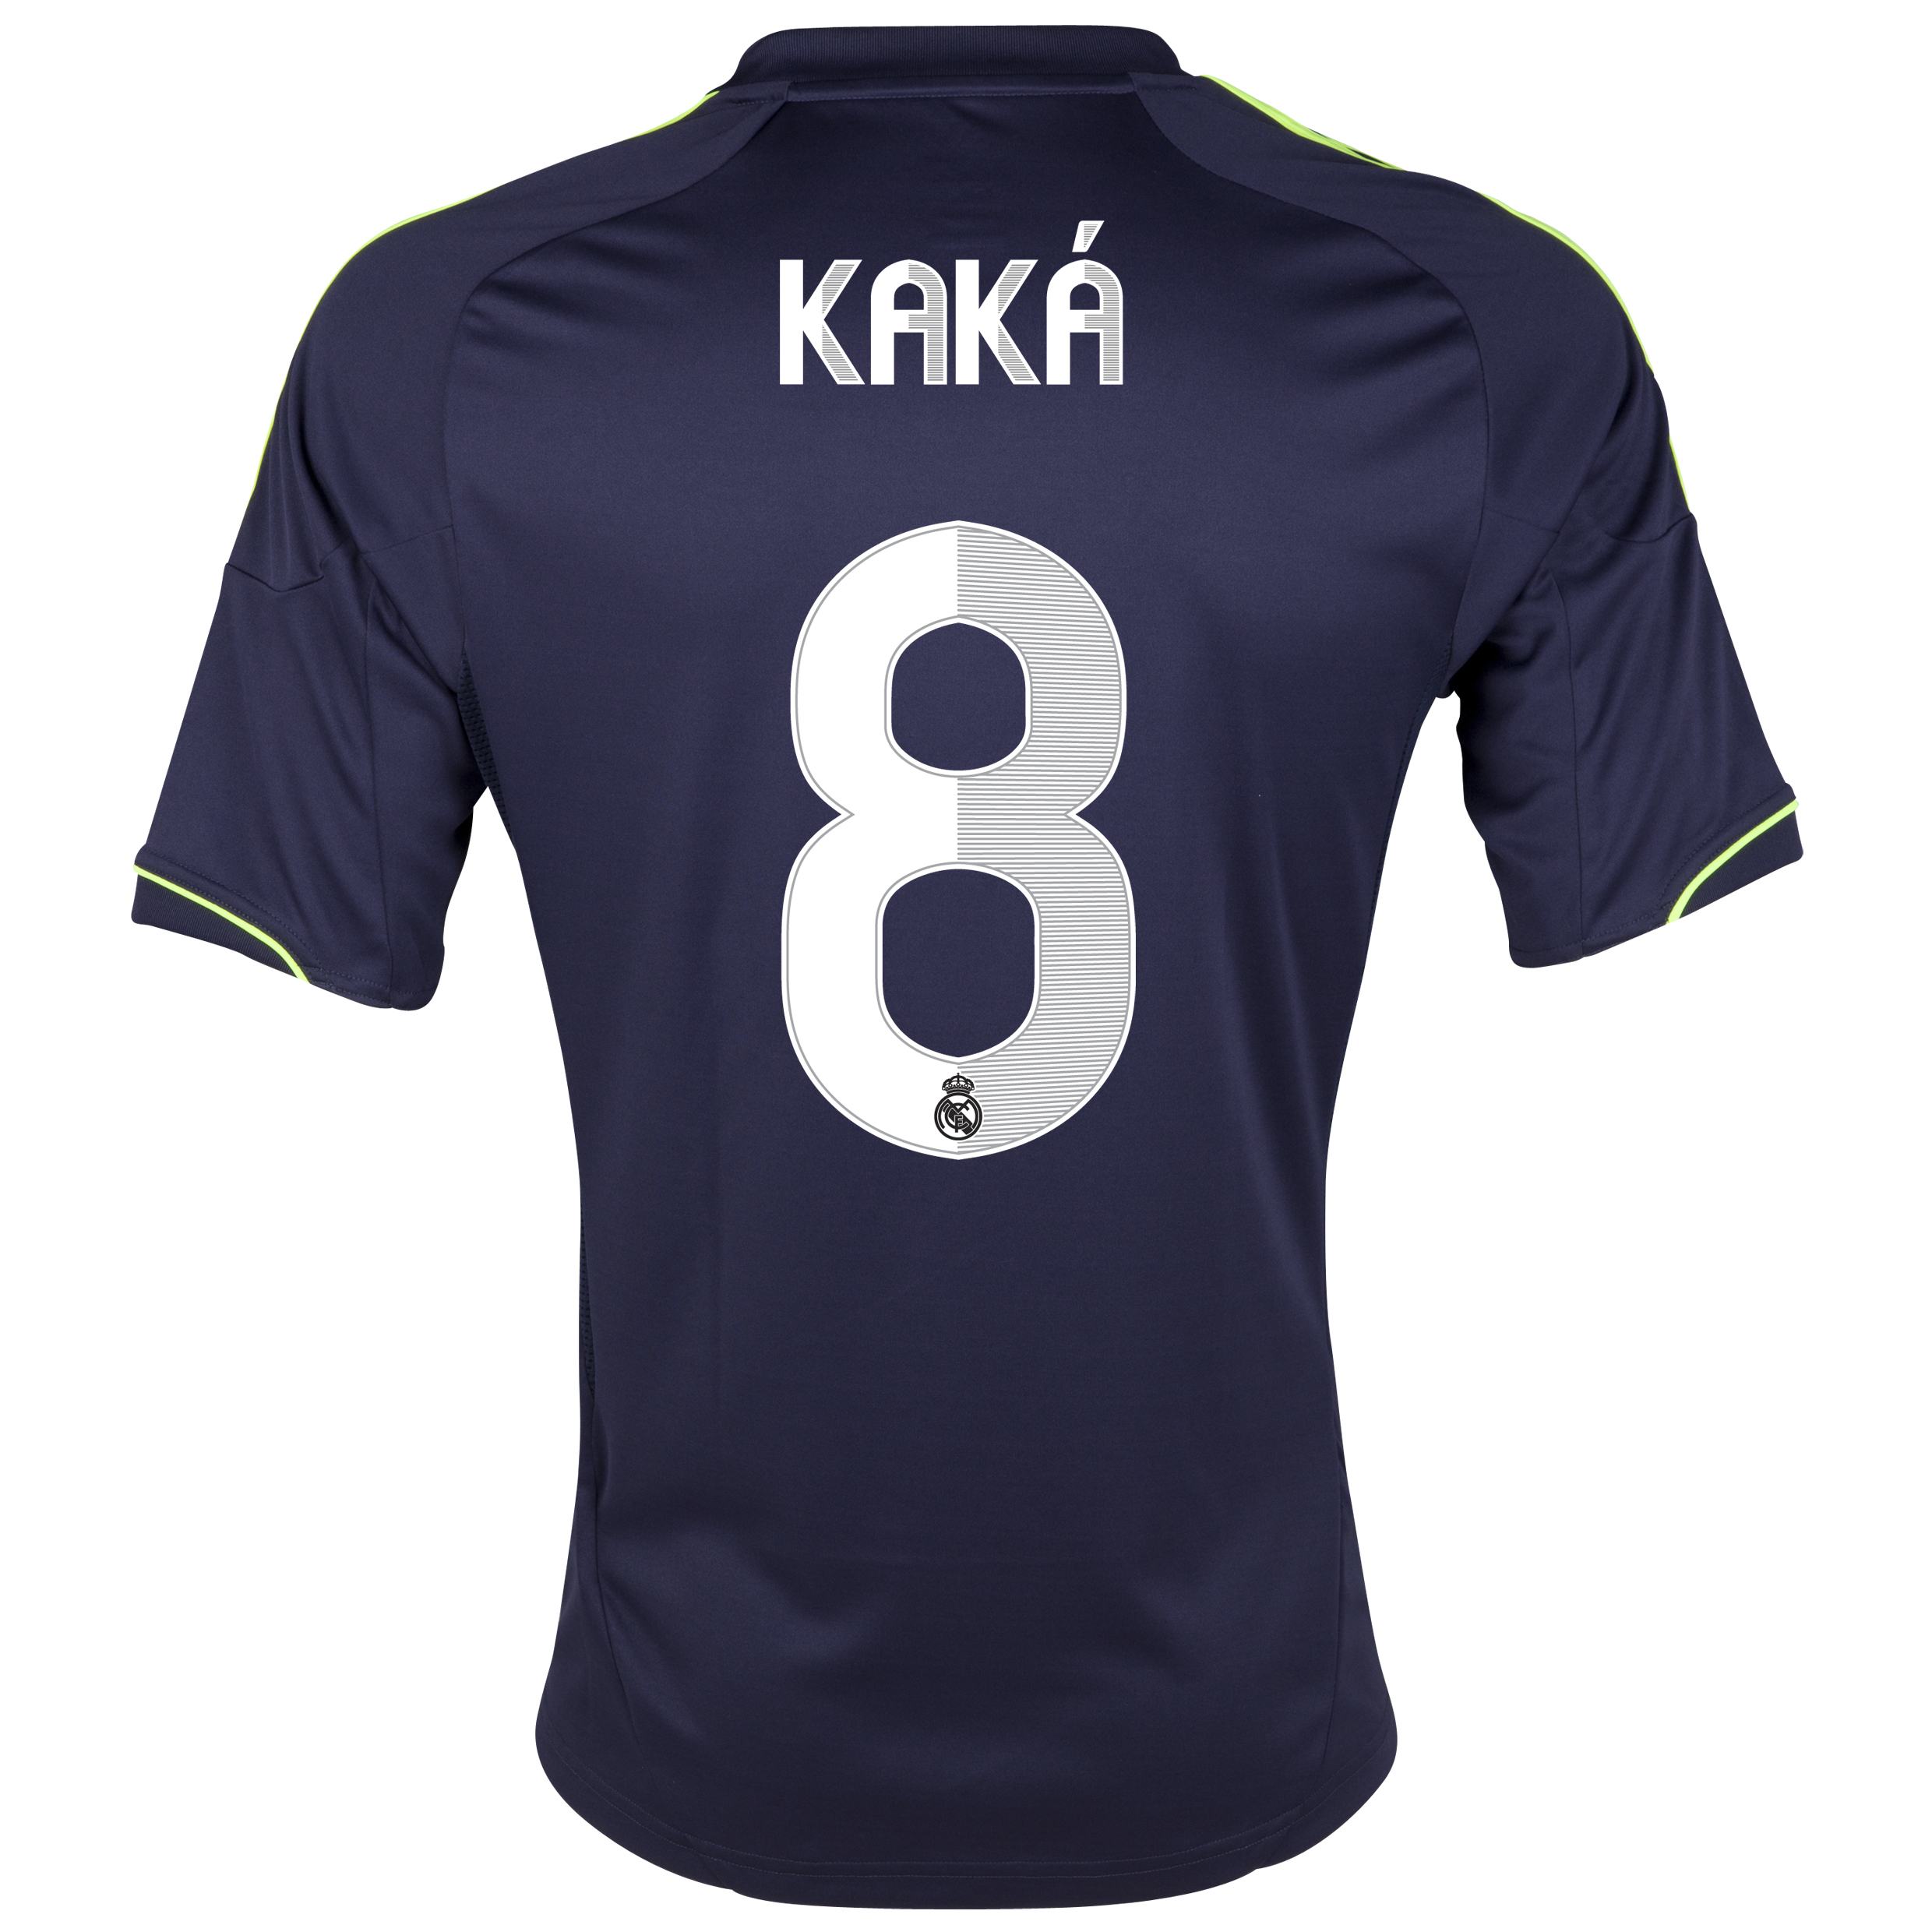 Camiseta visitante Real Madrid 2012/13 con impresin 8 Kak - Joven